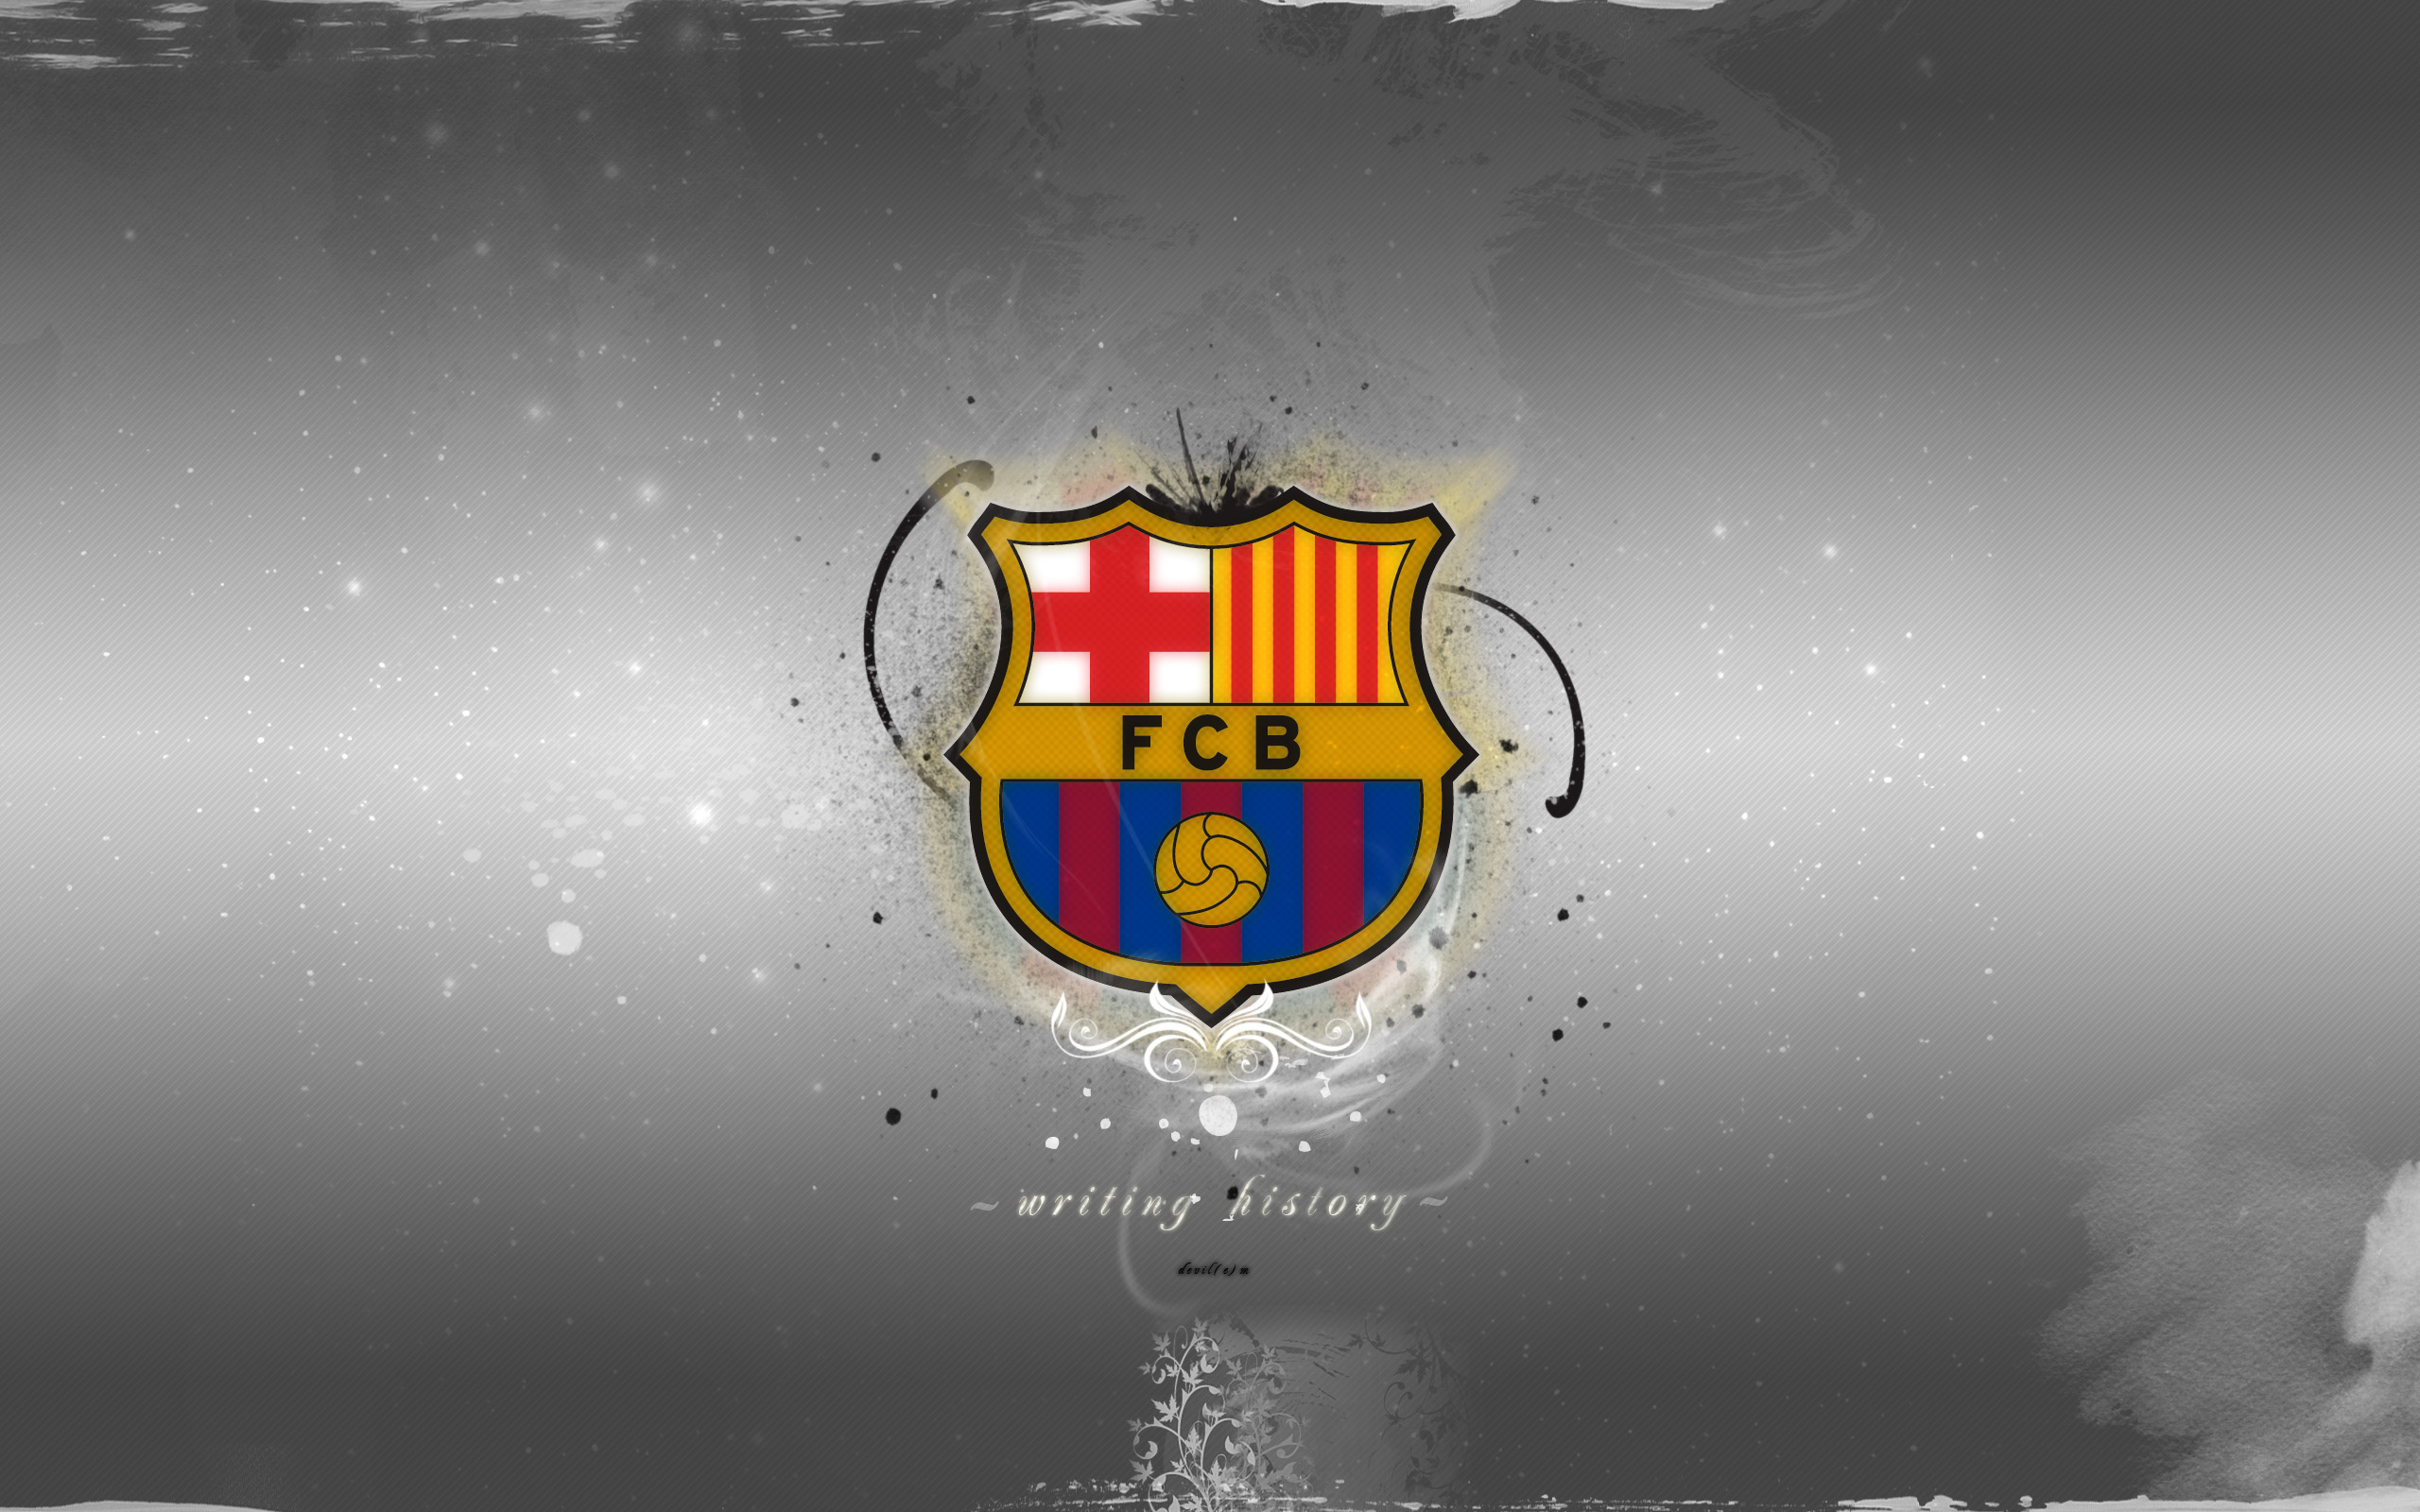 Fc Barcelona Desktop Wallpaper 2560x1600 34779